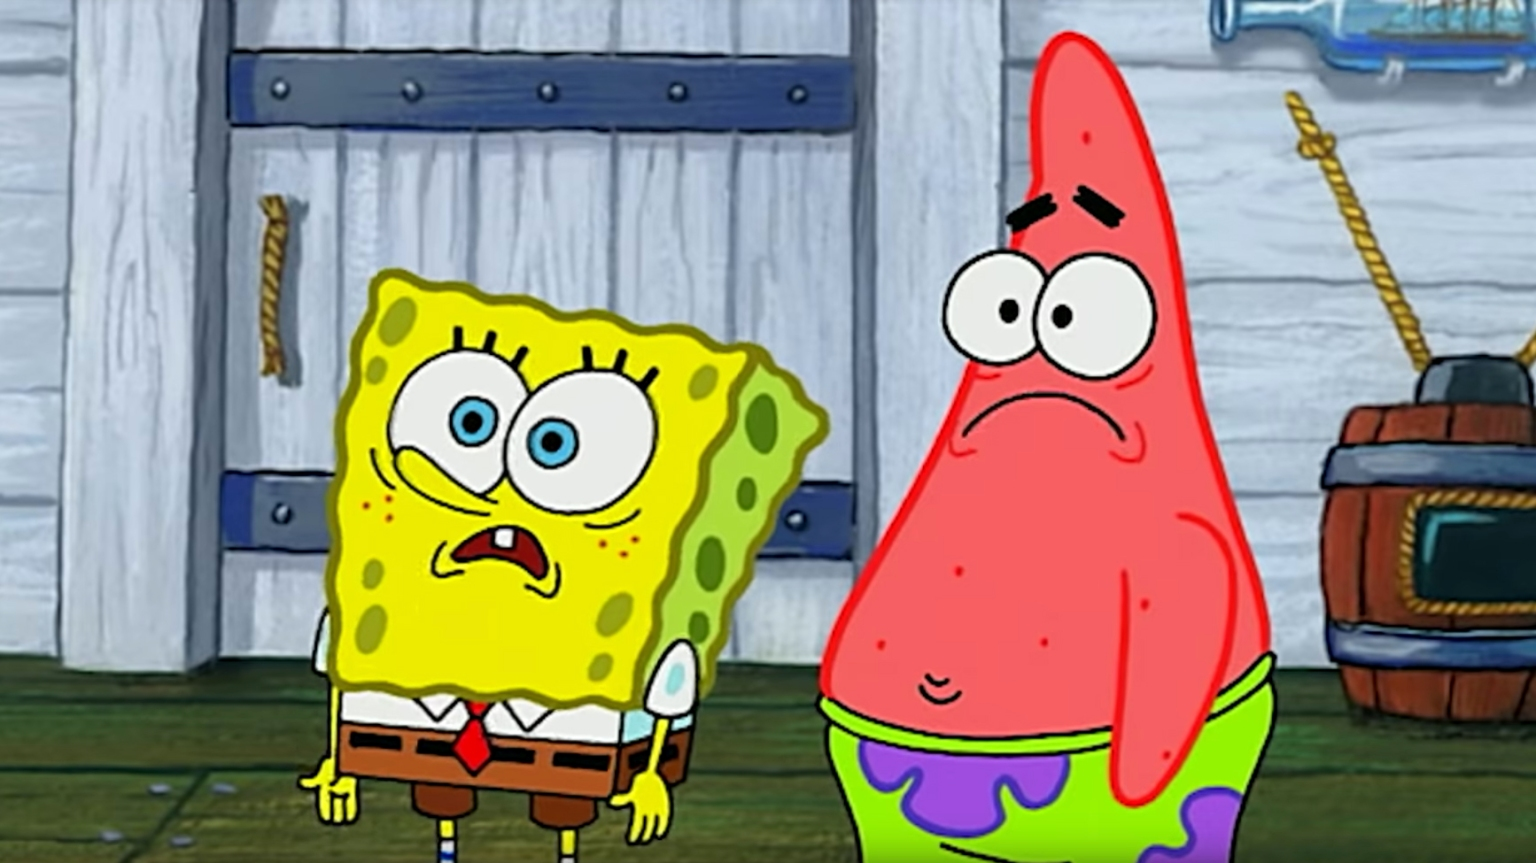 Inappropriate SpongeBob episodes get pulled by streaming services